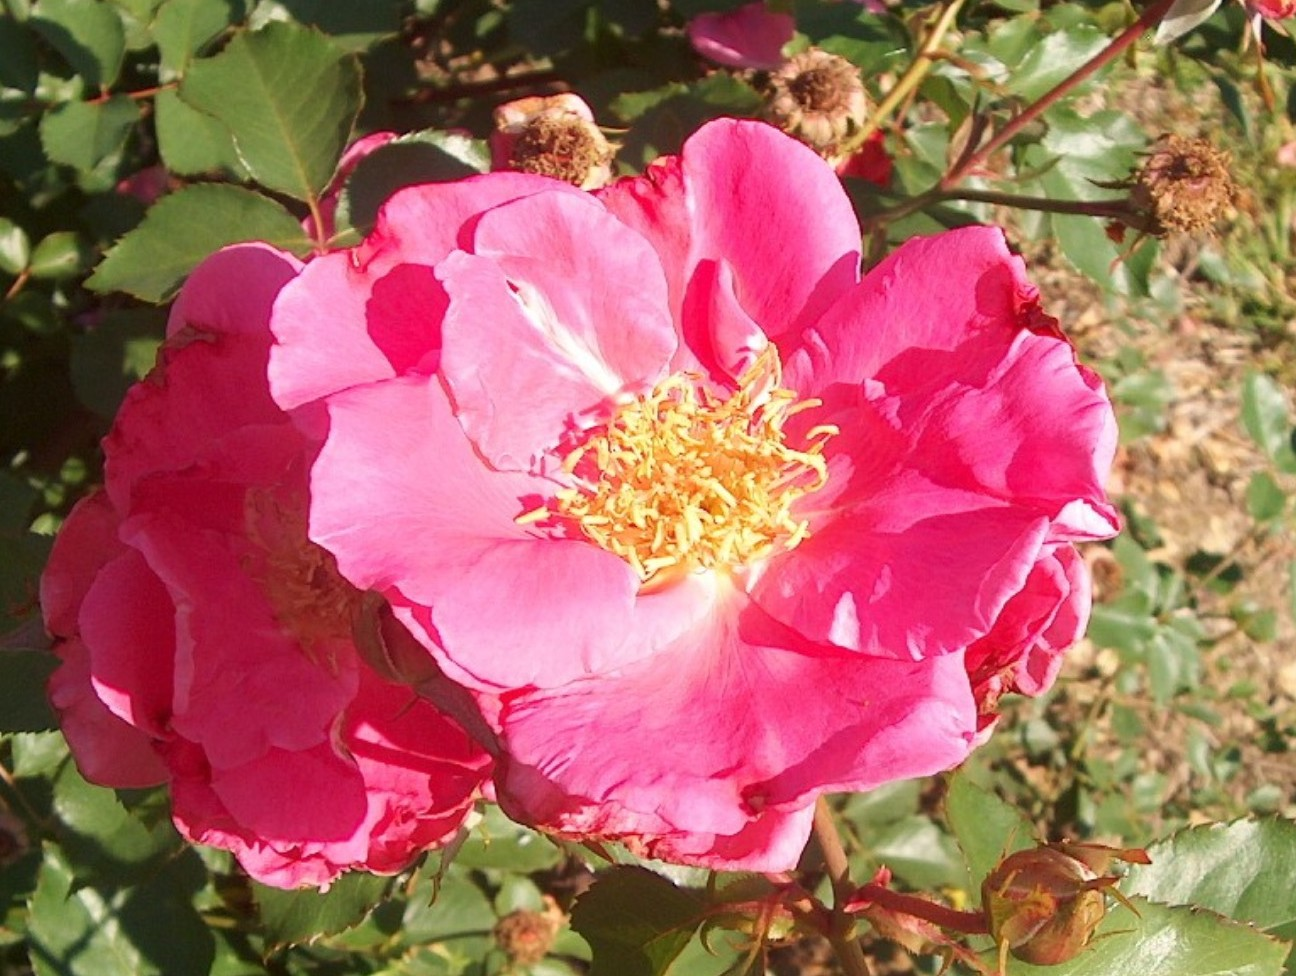 Rosa 'Carefree Beauty'  / Rosa 'Carefree Beauty'